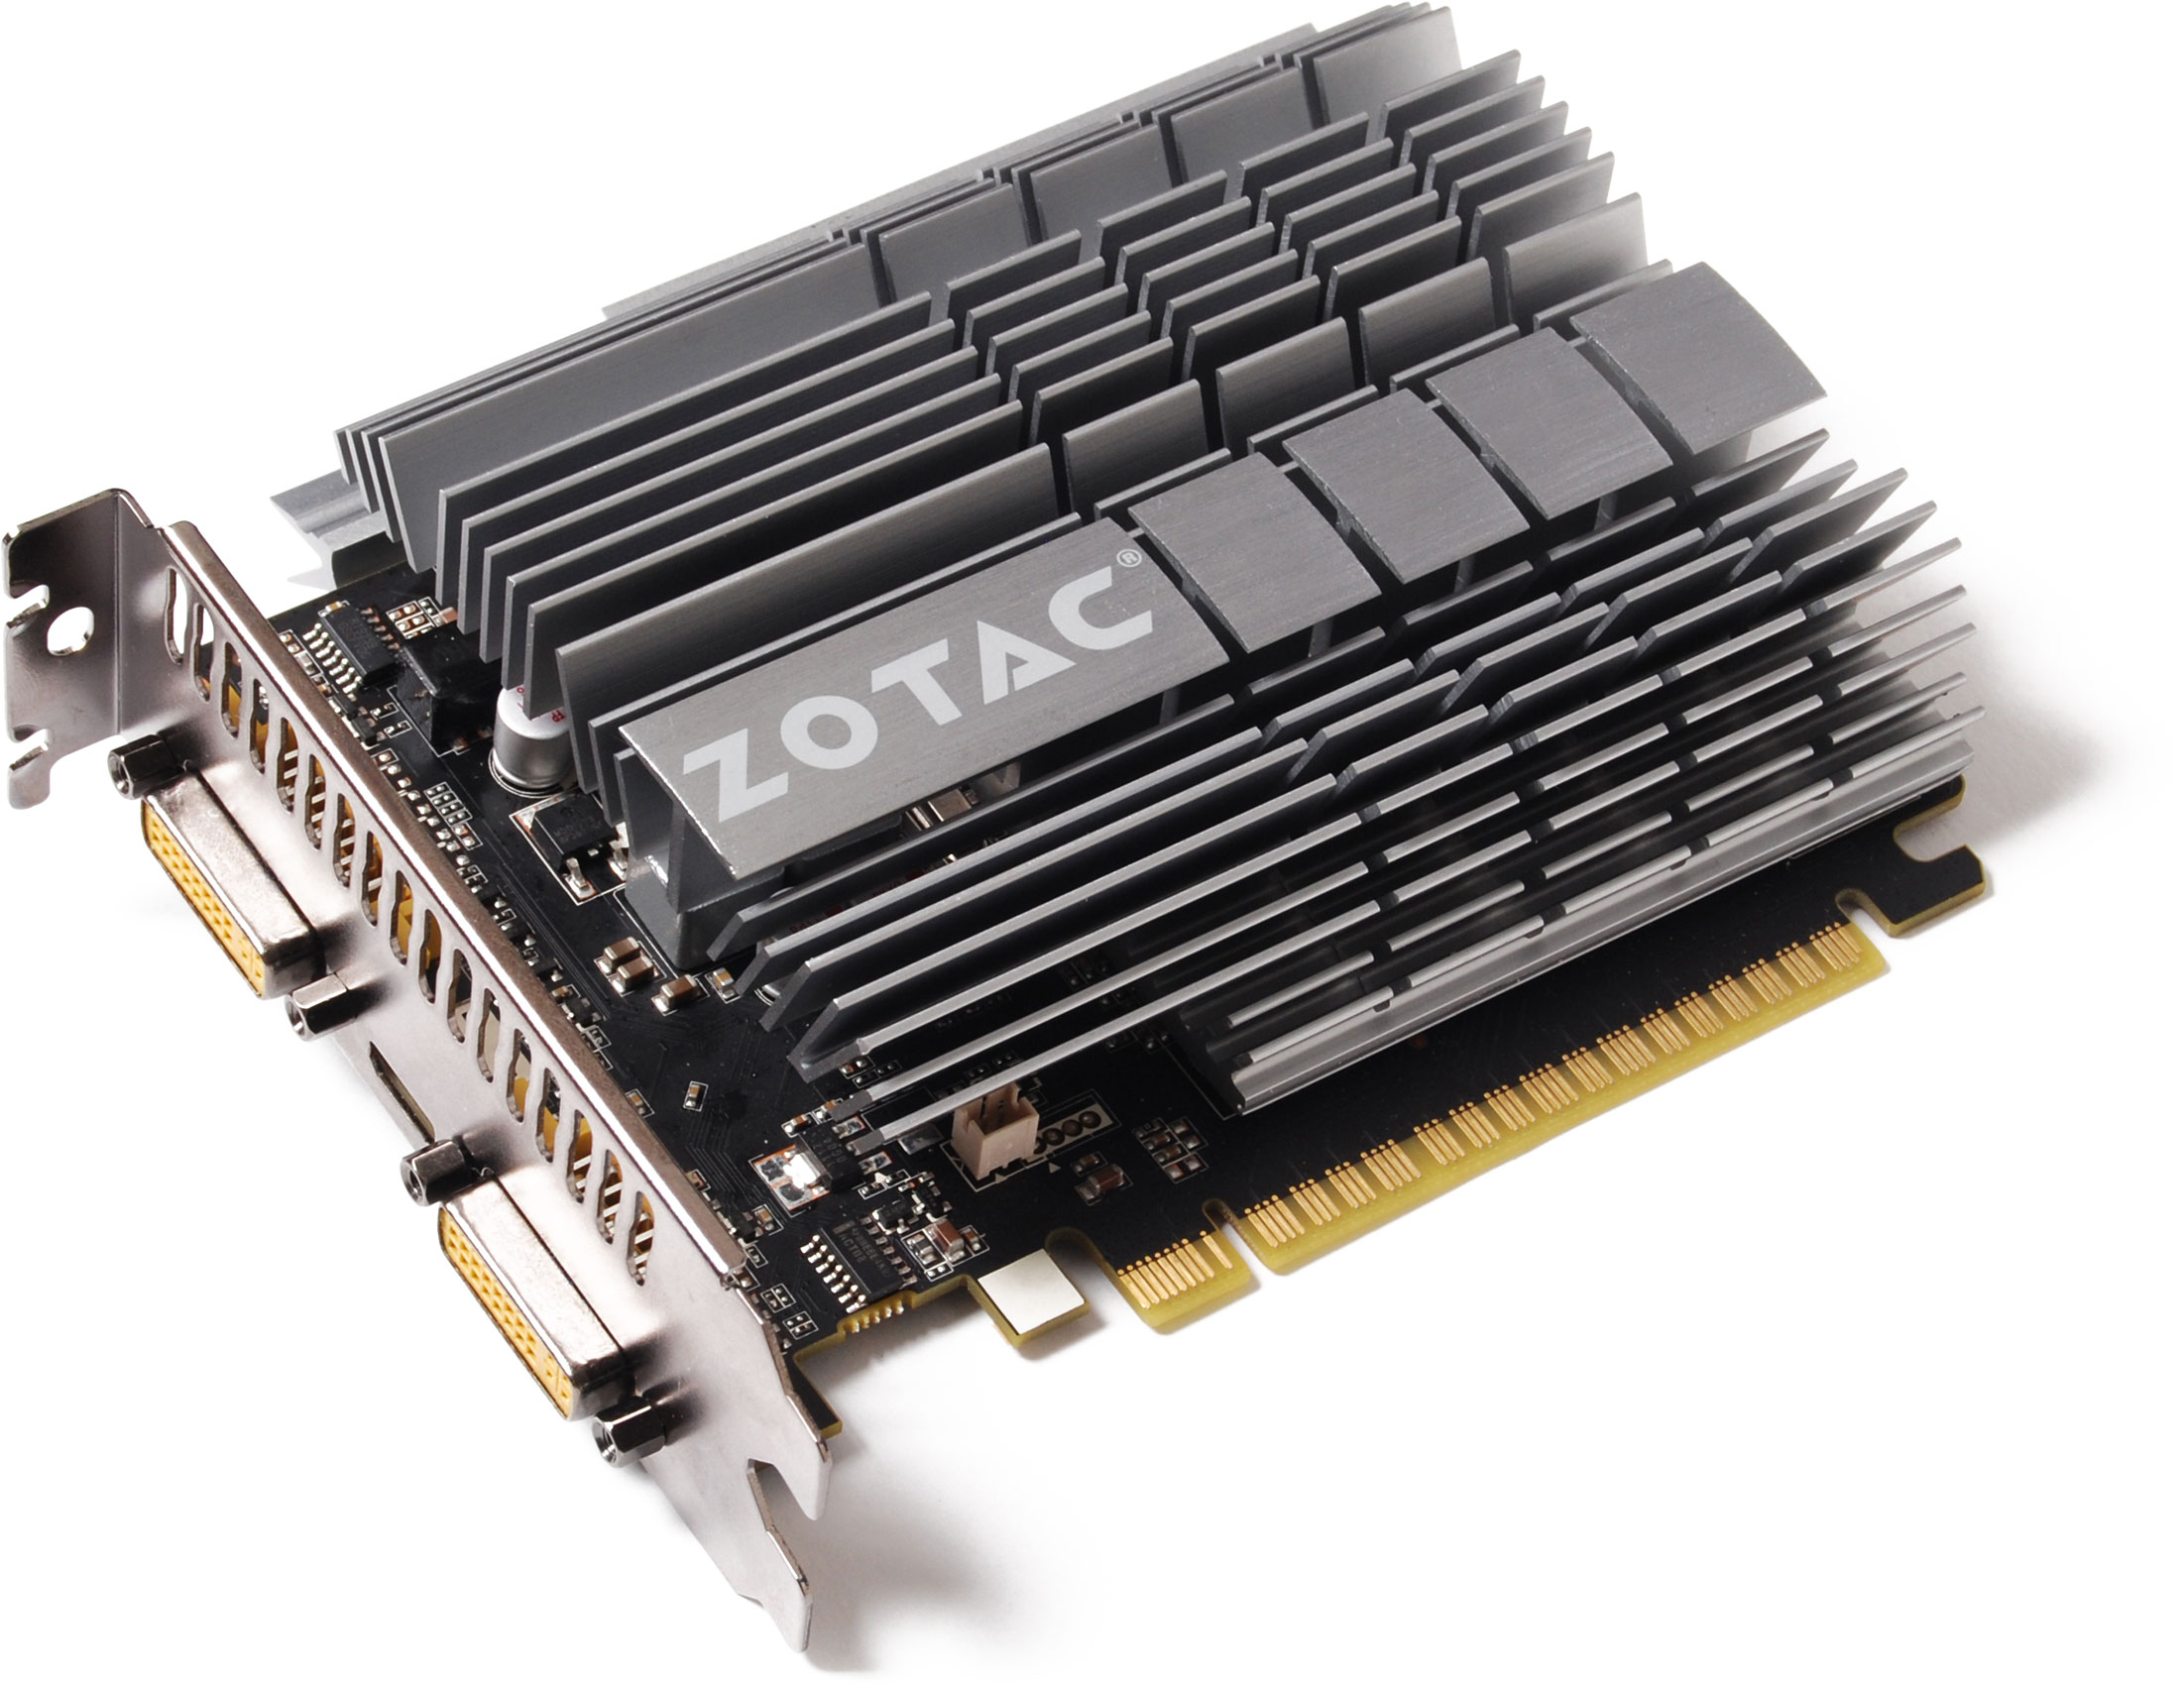 Fanless Geforce Gt430 1gb Ddr3 Zone Edition Vga Zotac Gt 1030 2gb Gddr5 The 430 Delivers A Perfect Balance Of Performance And Features While Maintaining Silence During Operation To Let Users Focus